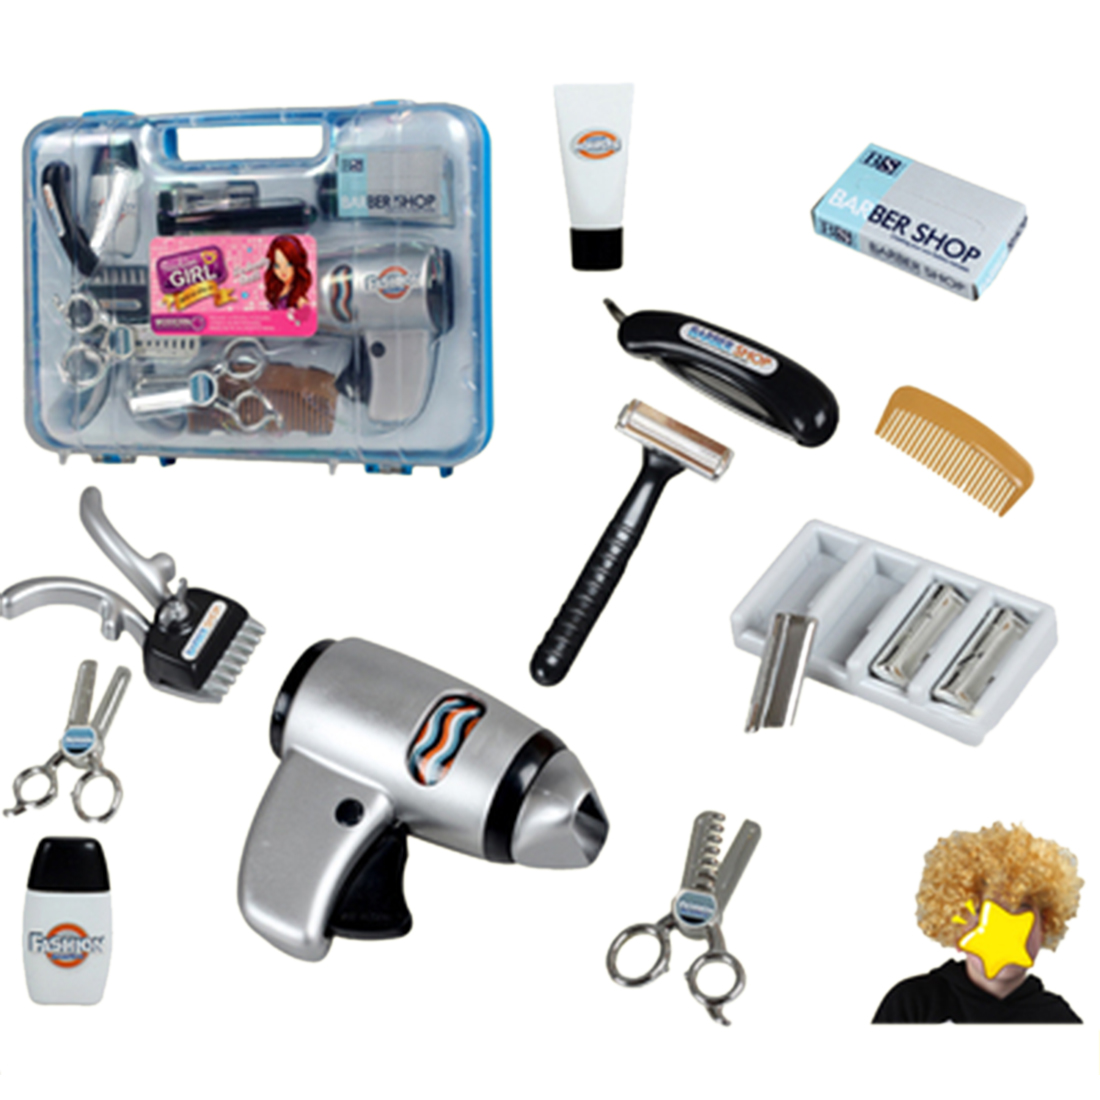 16Pcs Children Haircut Tool Toy Hairdressing Pretend Play Set With Wig Role Play Classic Toys For Children- Pink Blue Box Random